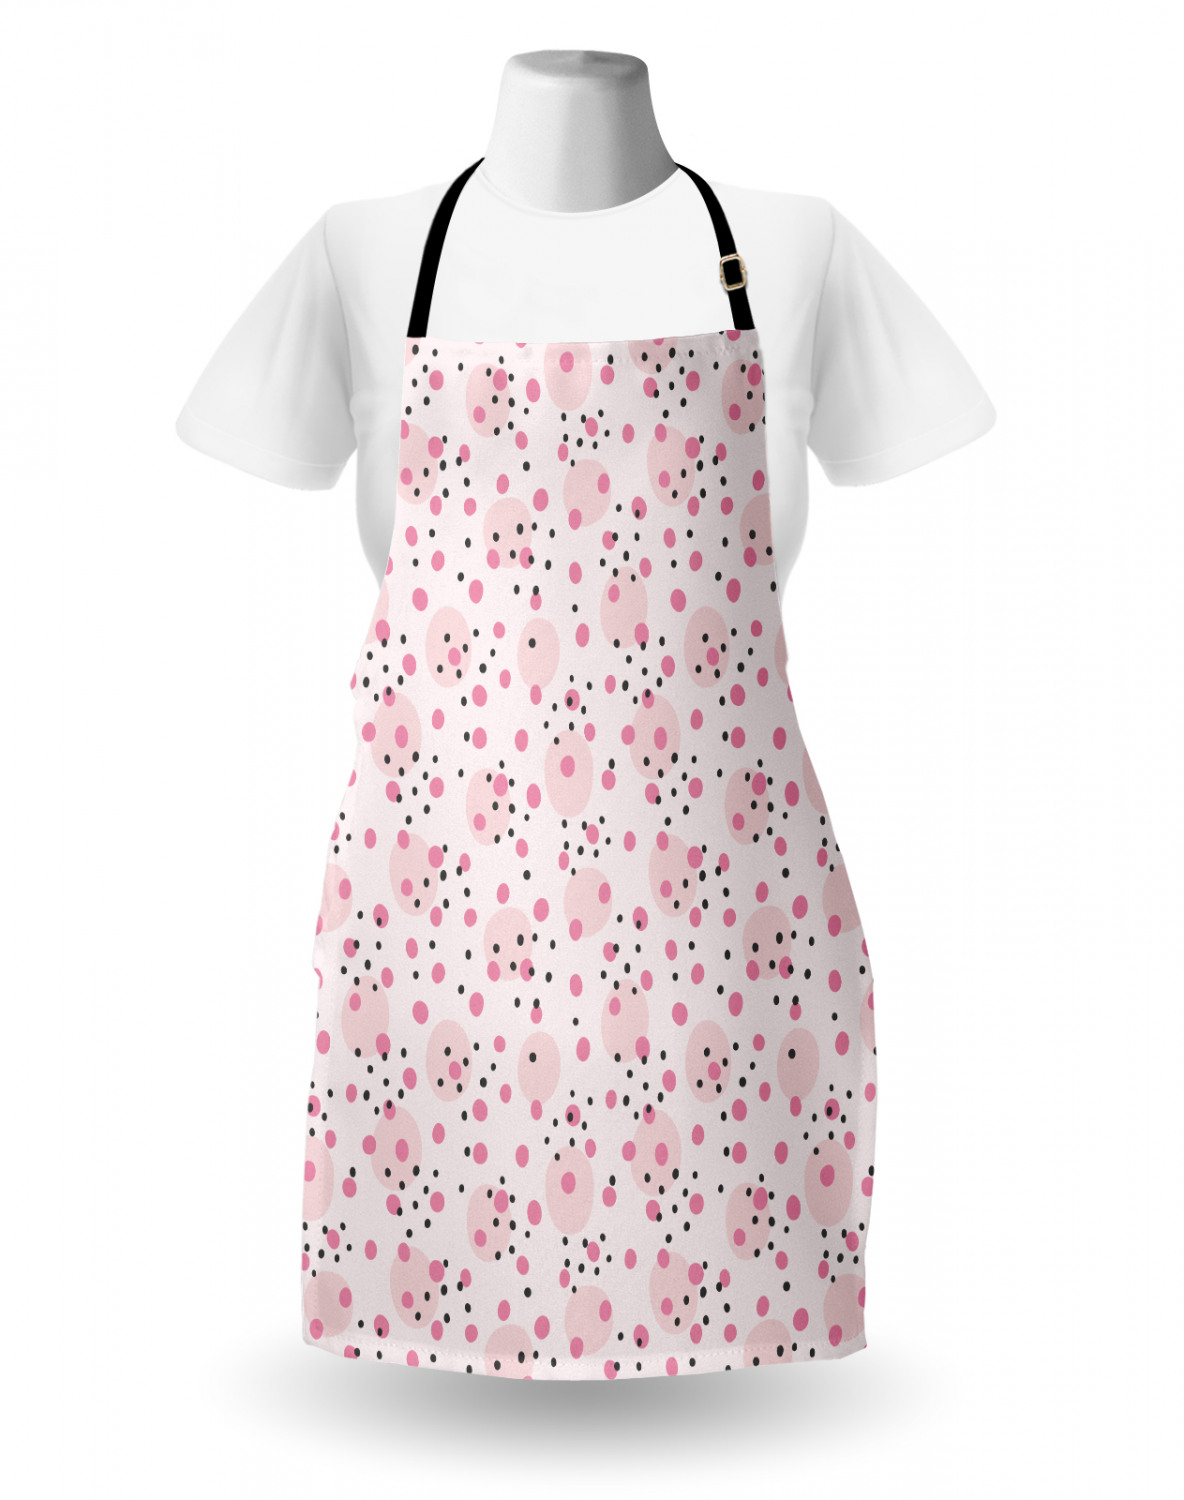 Ambesonne-Outdoor-Use-Apron-with-Adjustable-Neck-Strap-for-Gardening-and-Cooking miniatura 5